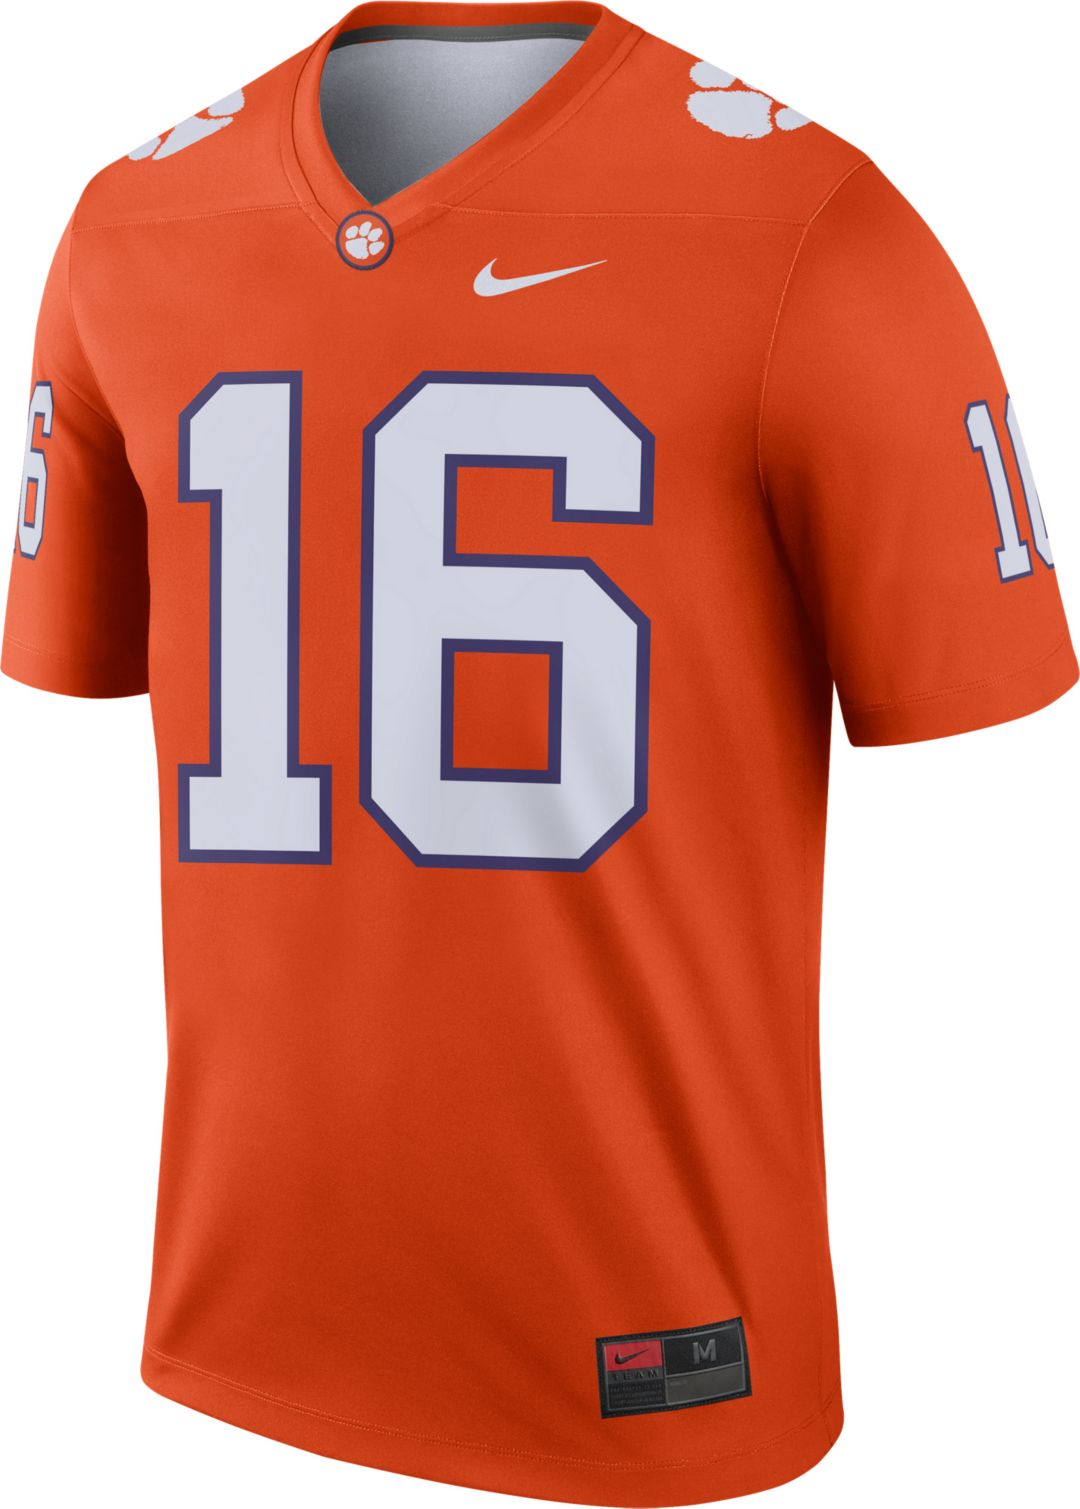 size 40 7b6ef 9c5c2 Nike Men's Clemson Tigers #16 Orange Dri-FIT Legend Football Jersey